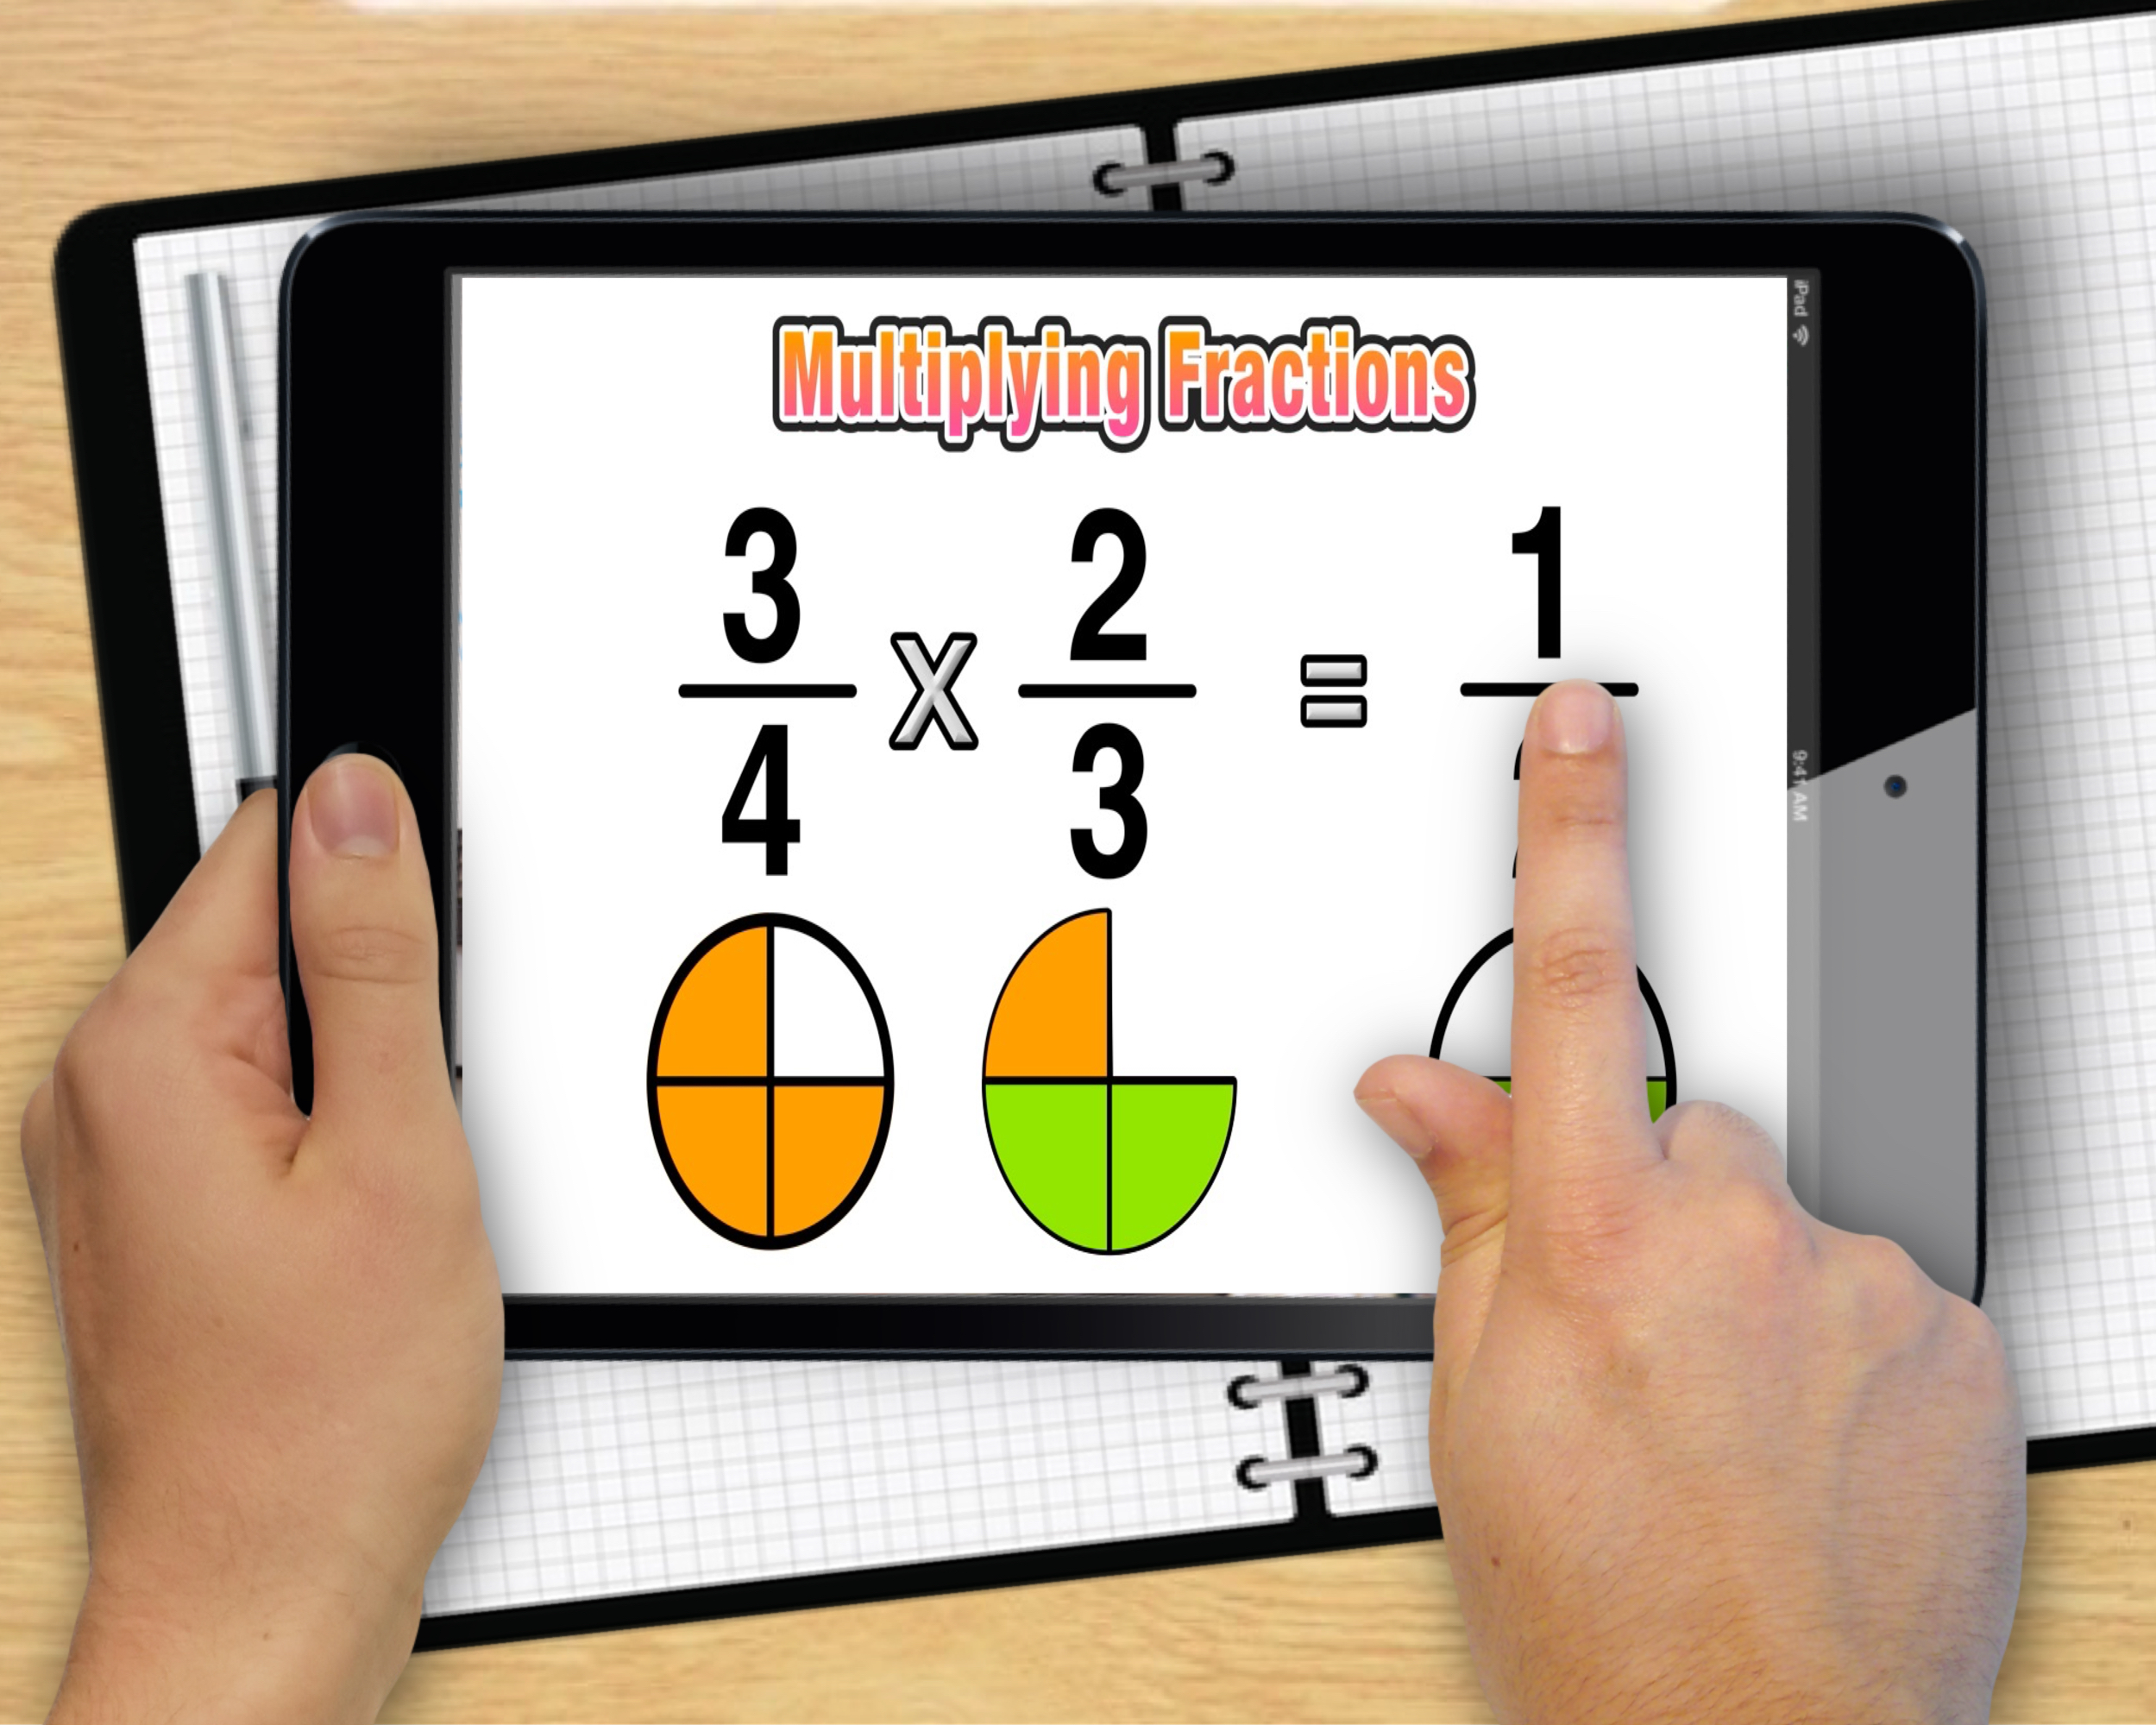 Free online resources like  MashUpMath.com  are a great way to help your child learn math in creative and visual ways.